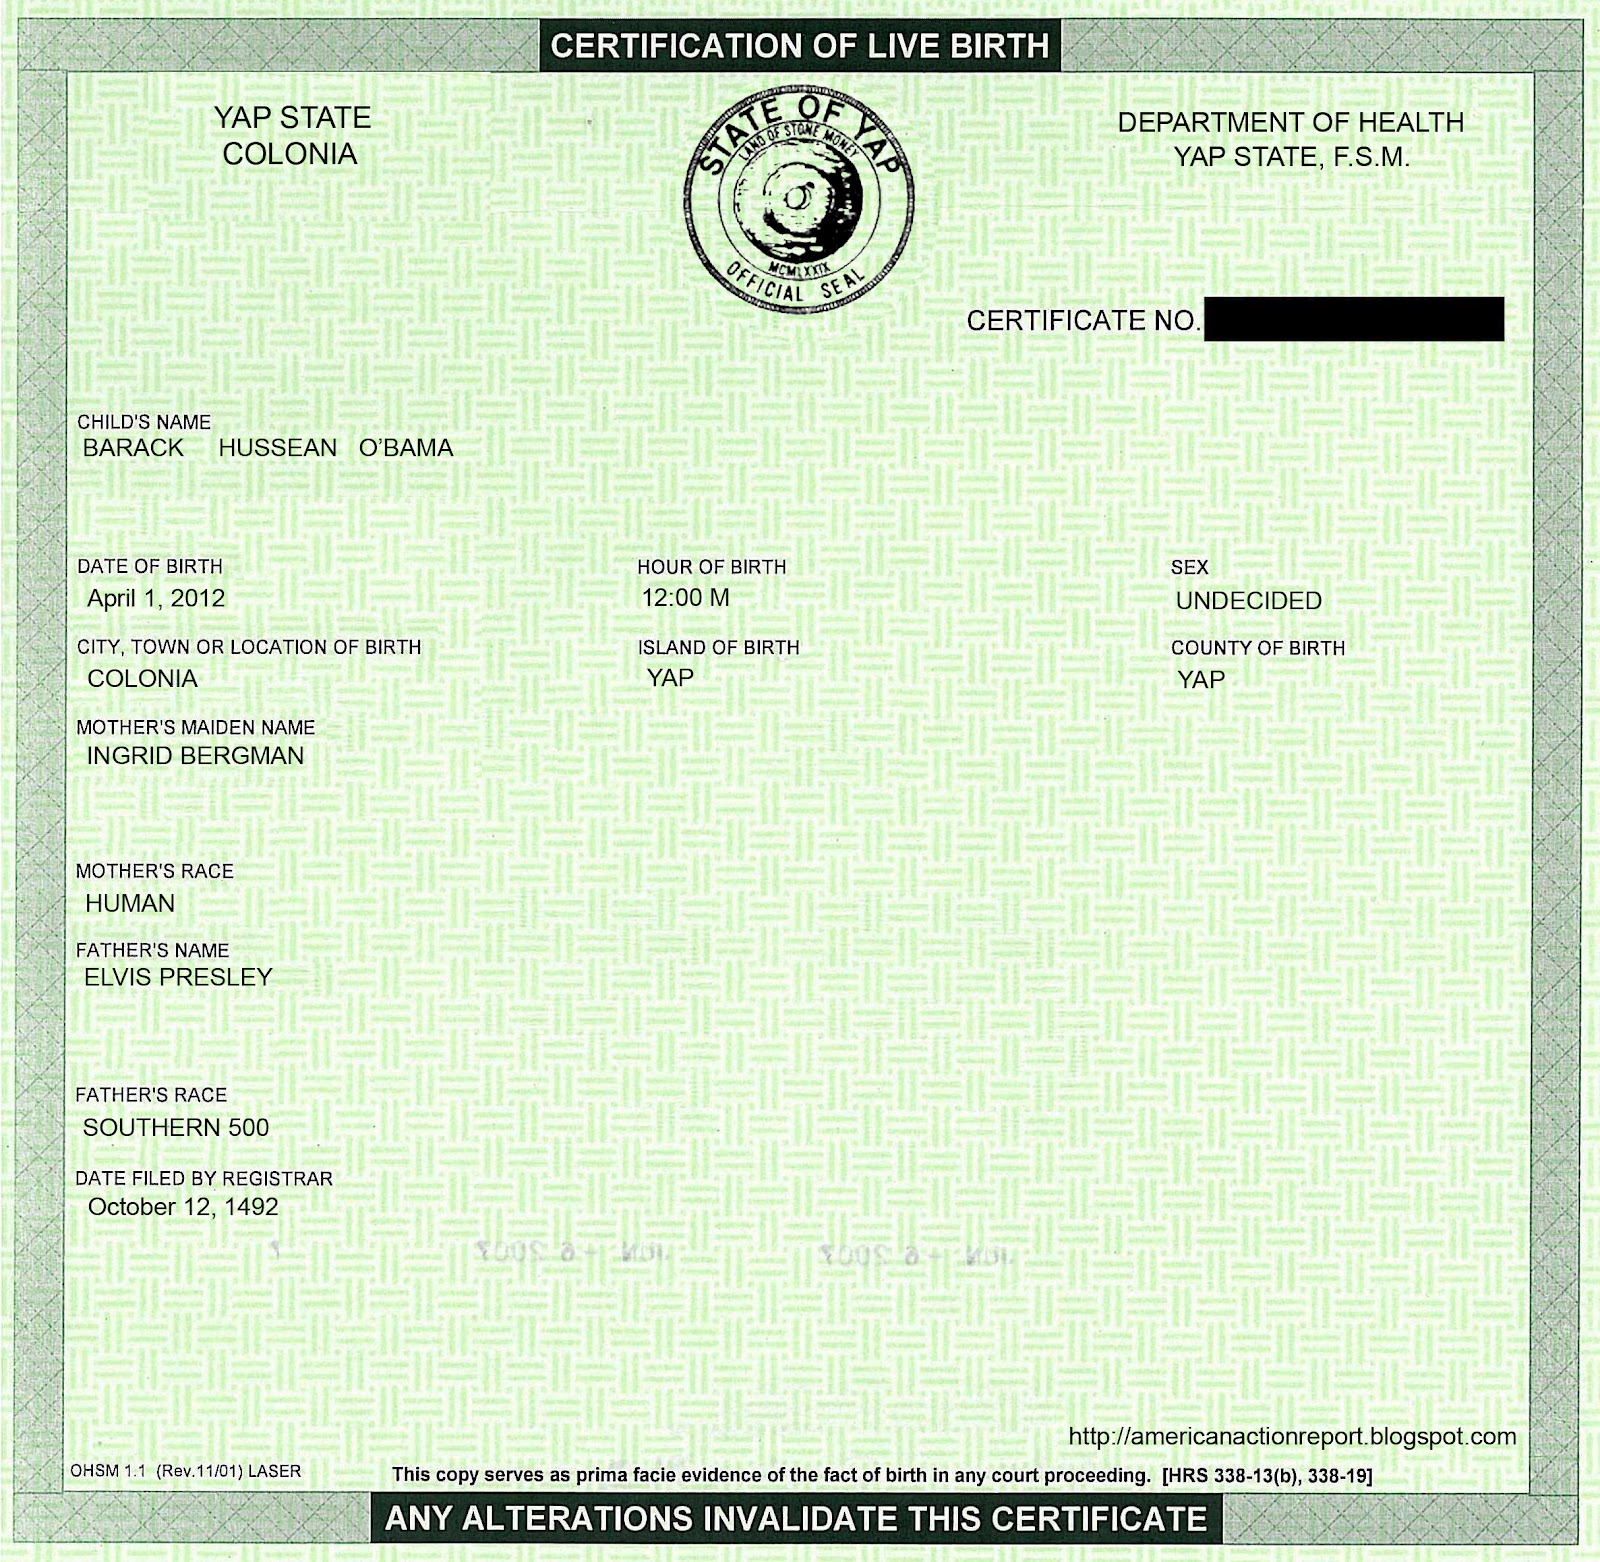 American Action Report: How I Faked Obama\'s Short-form Birth Certificate